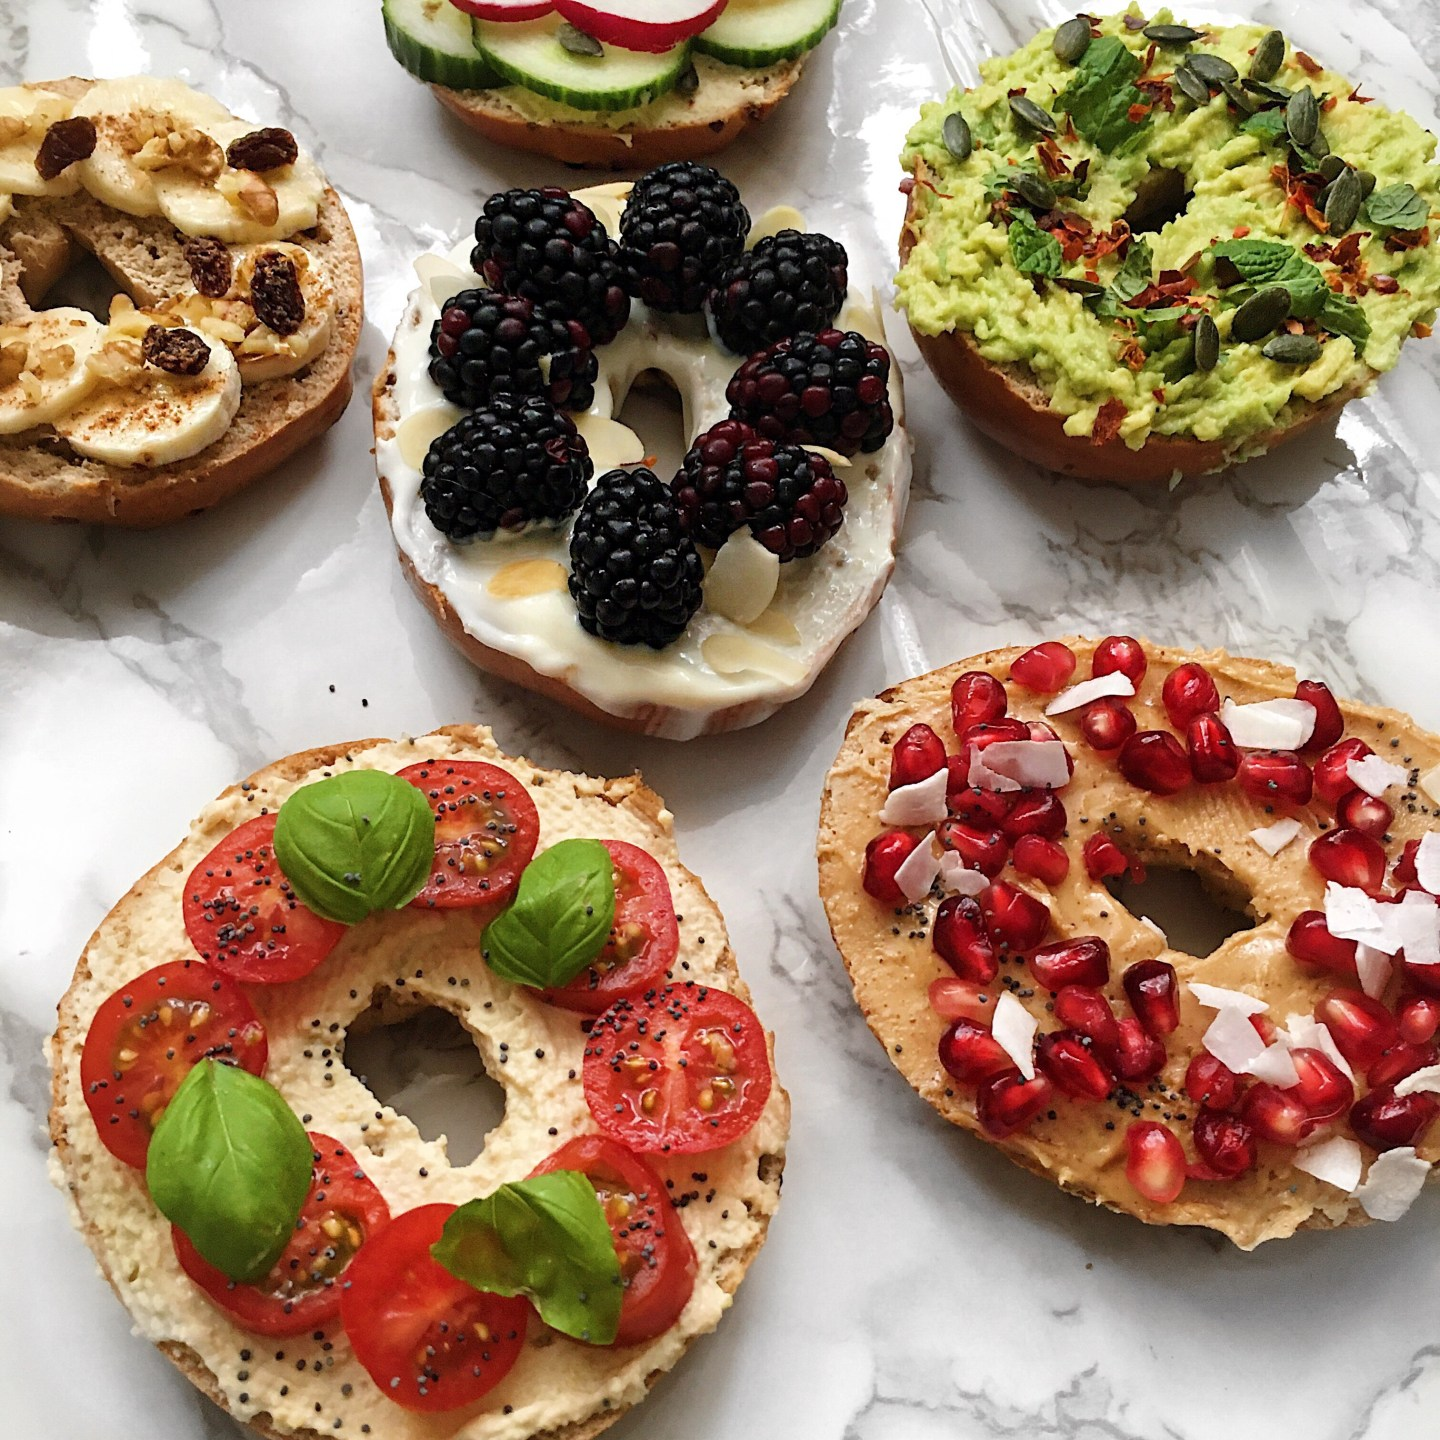 My Favourite Healthy Bagel Toppings